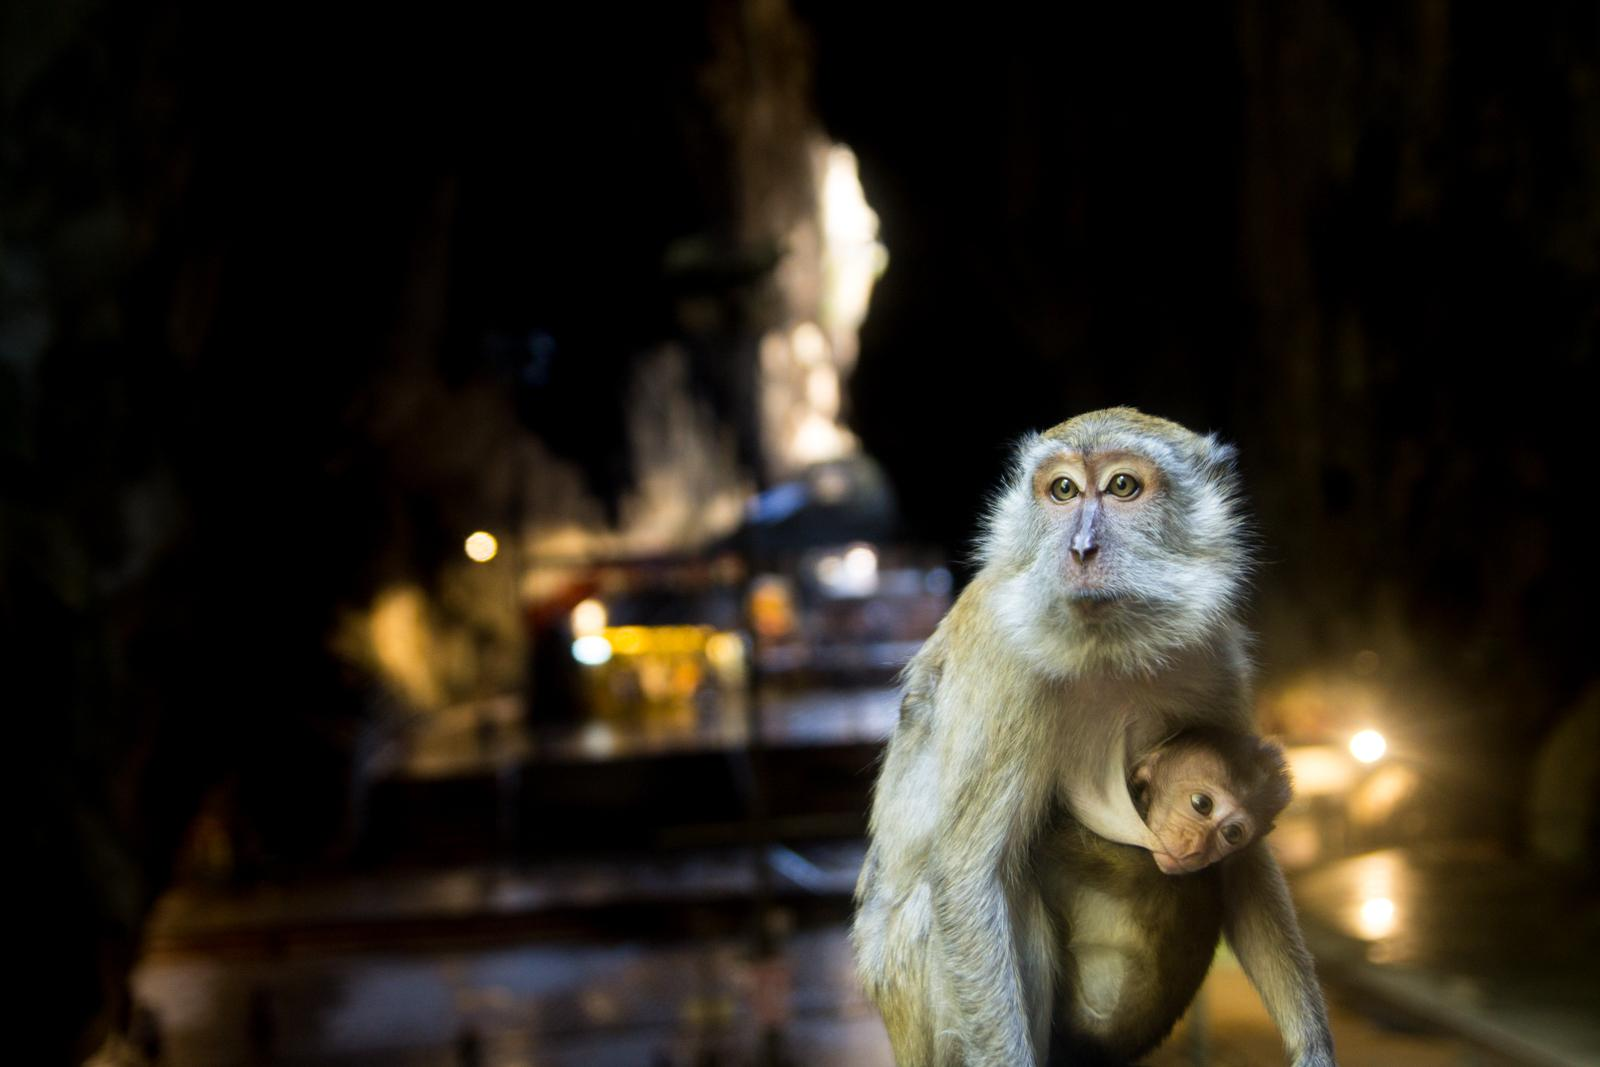 Monkeys at Batu Caves #1